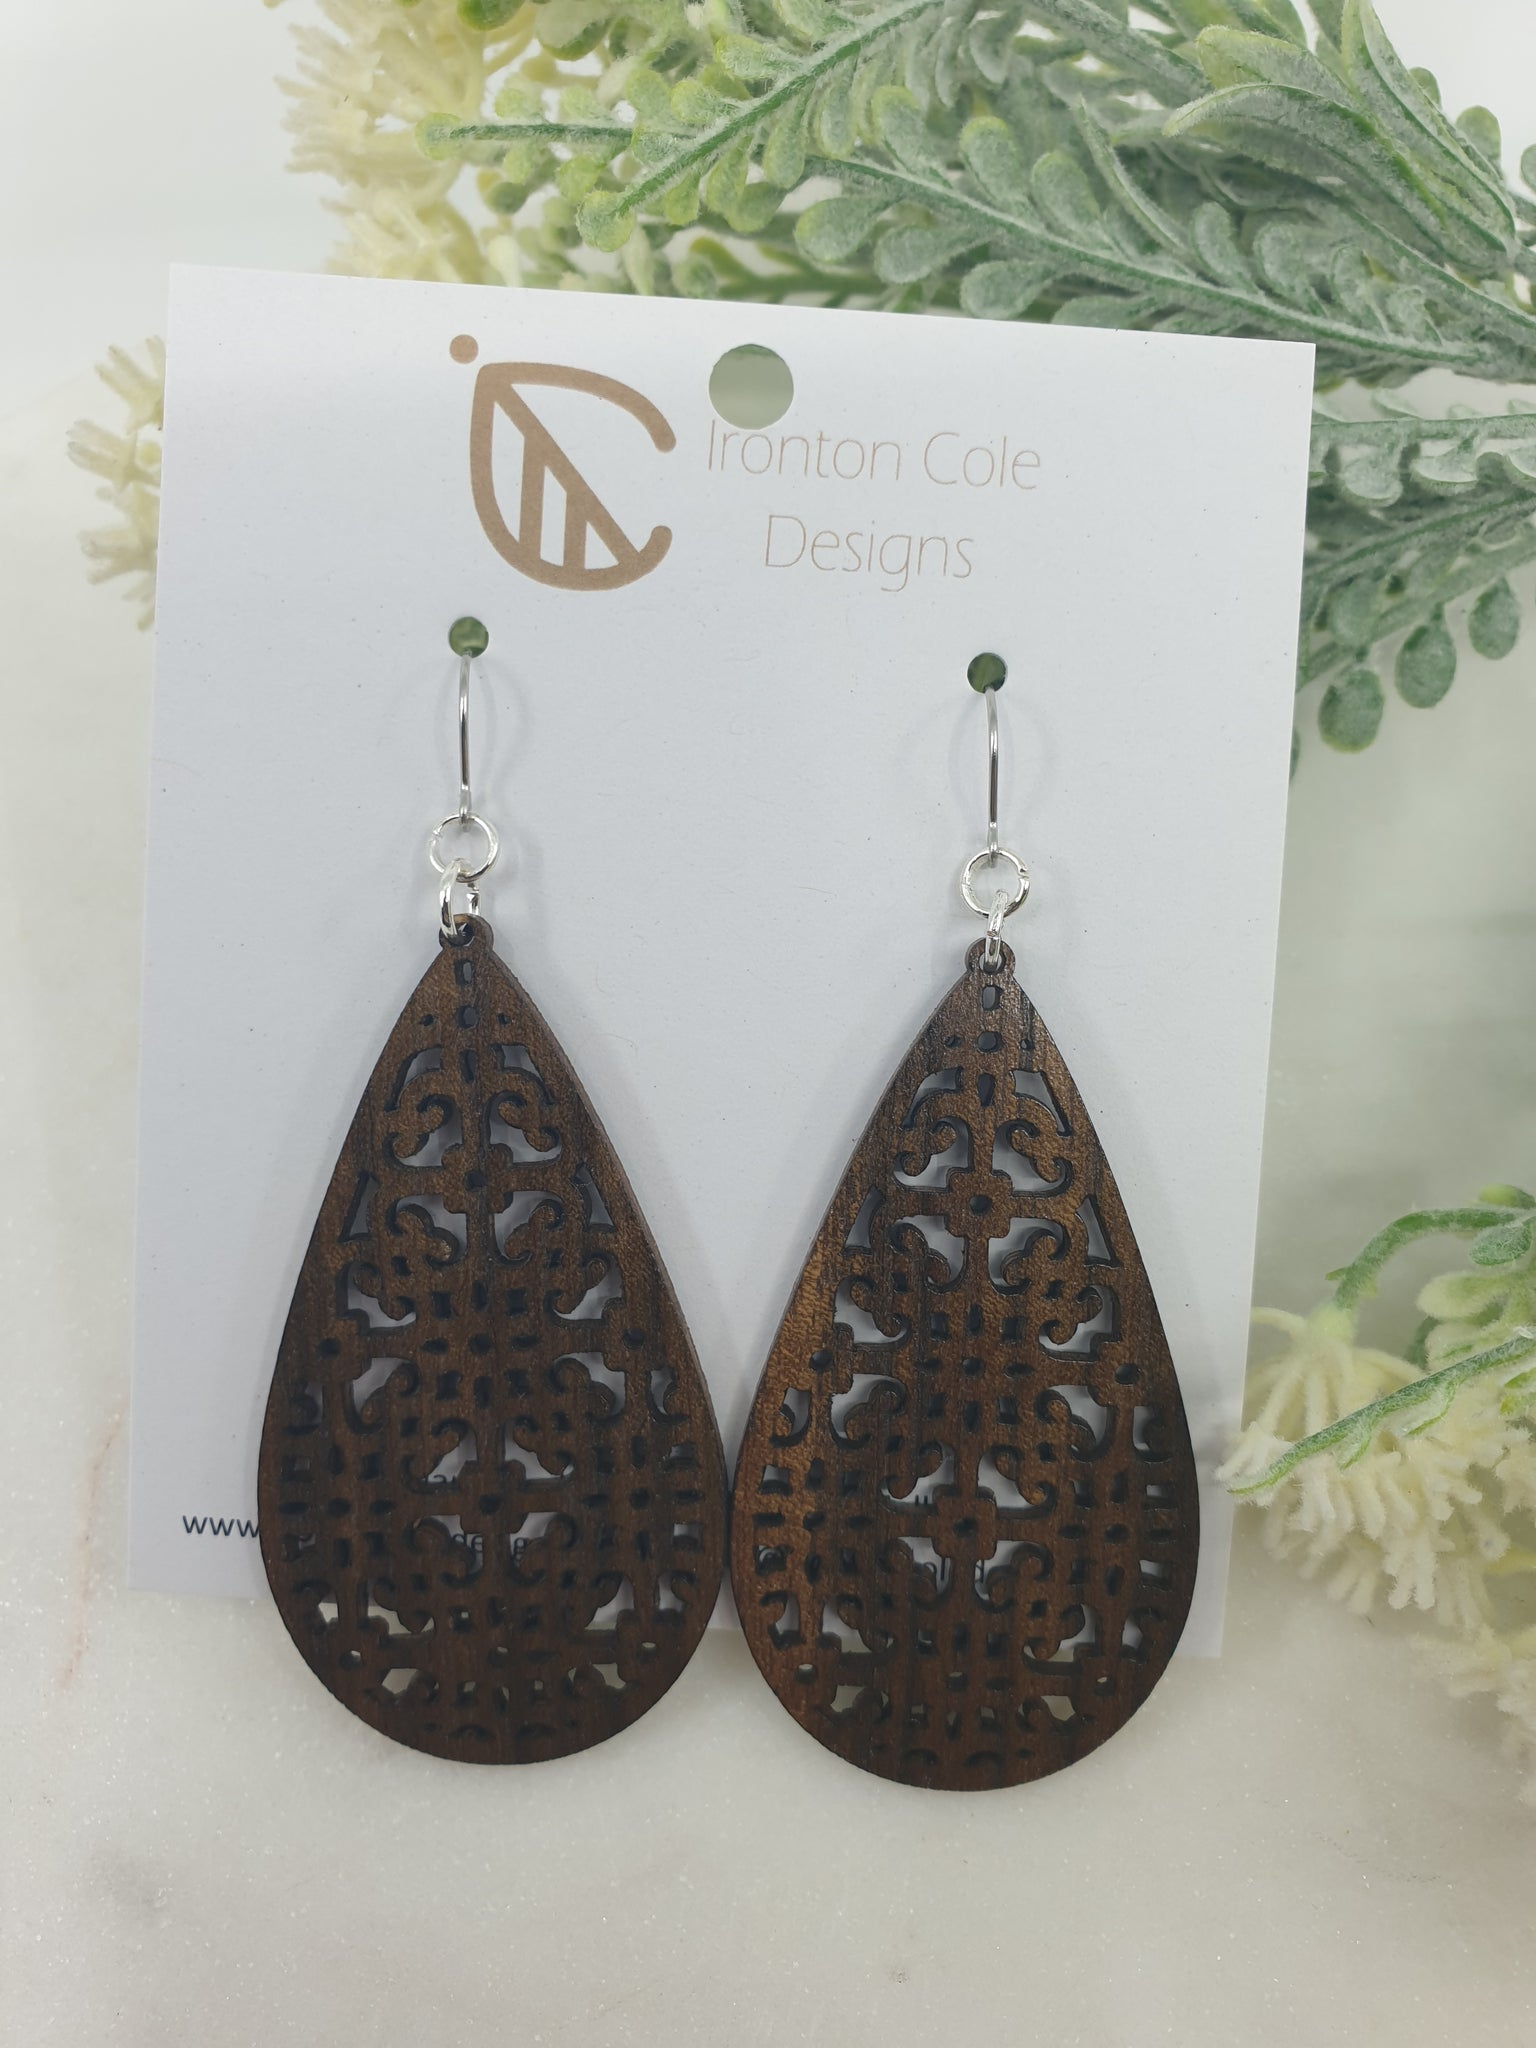 Moroccan inspired patterned earrings with hypoallergenic silver hooks.